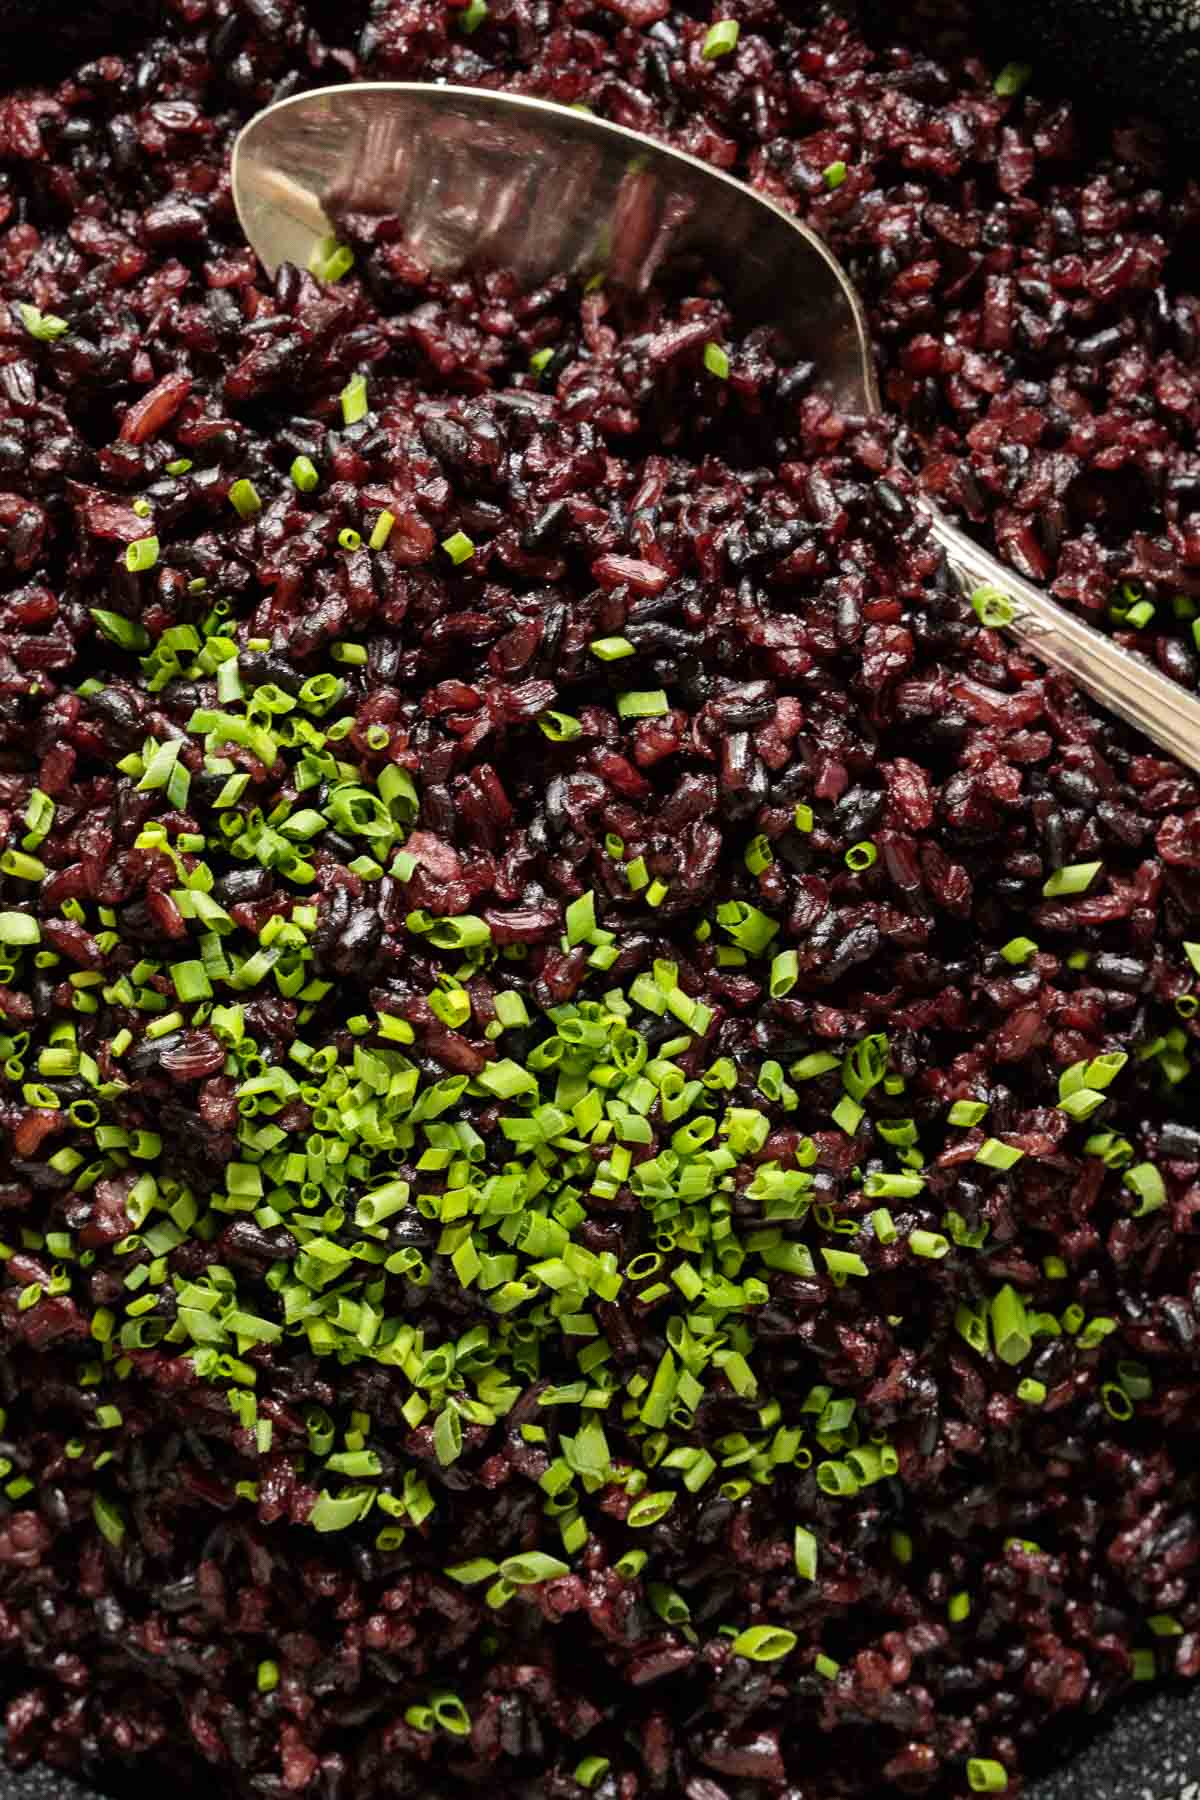 Closeup photo of a platter of black rice used to demonstrate How to Cook Black Rice.